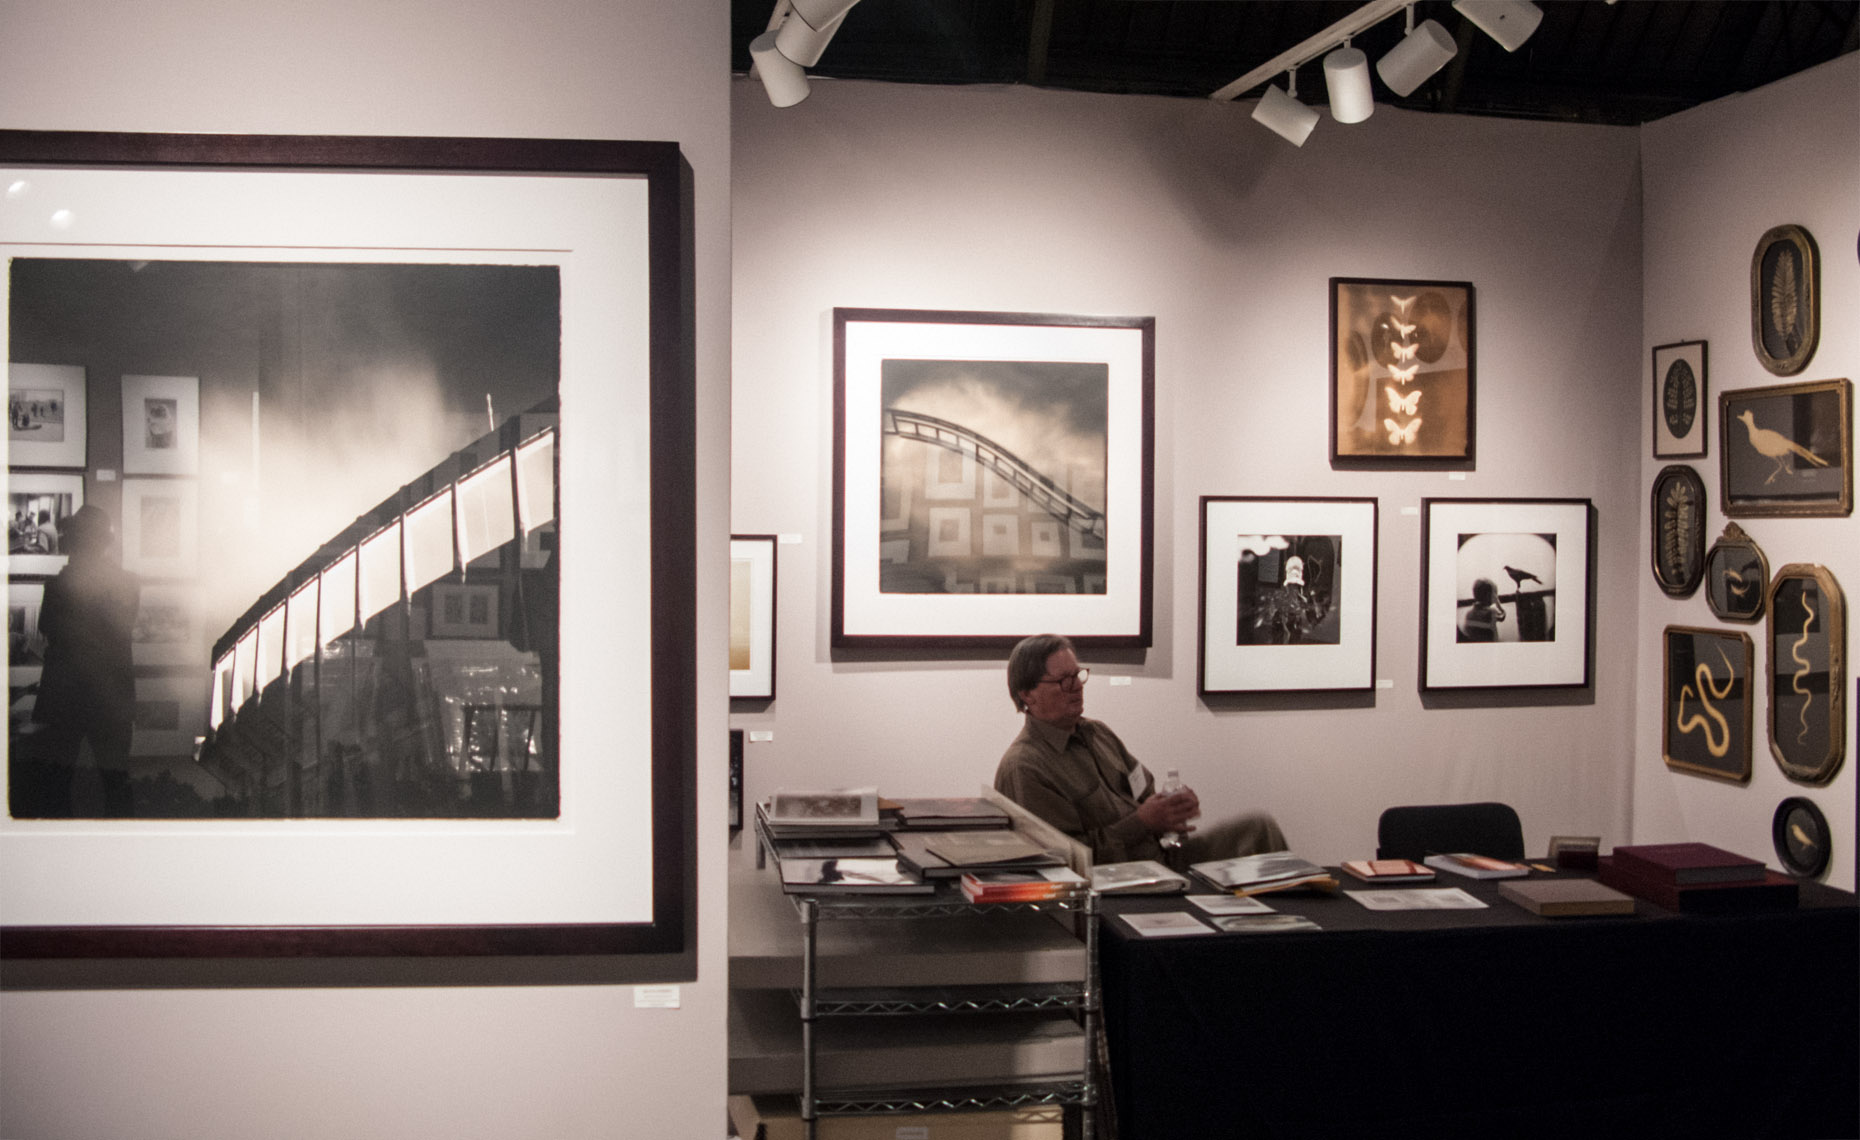 Sean Perry Photographs • Installation at AIPAD Photography Fair, NYC